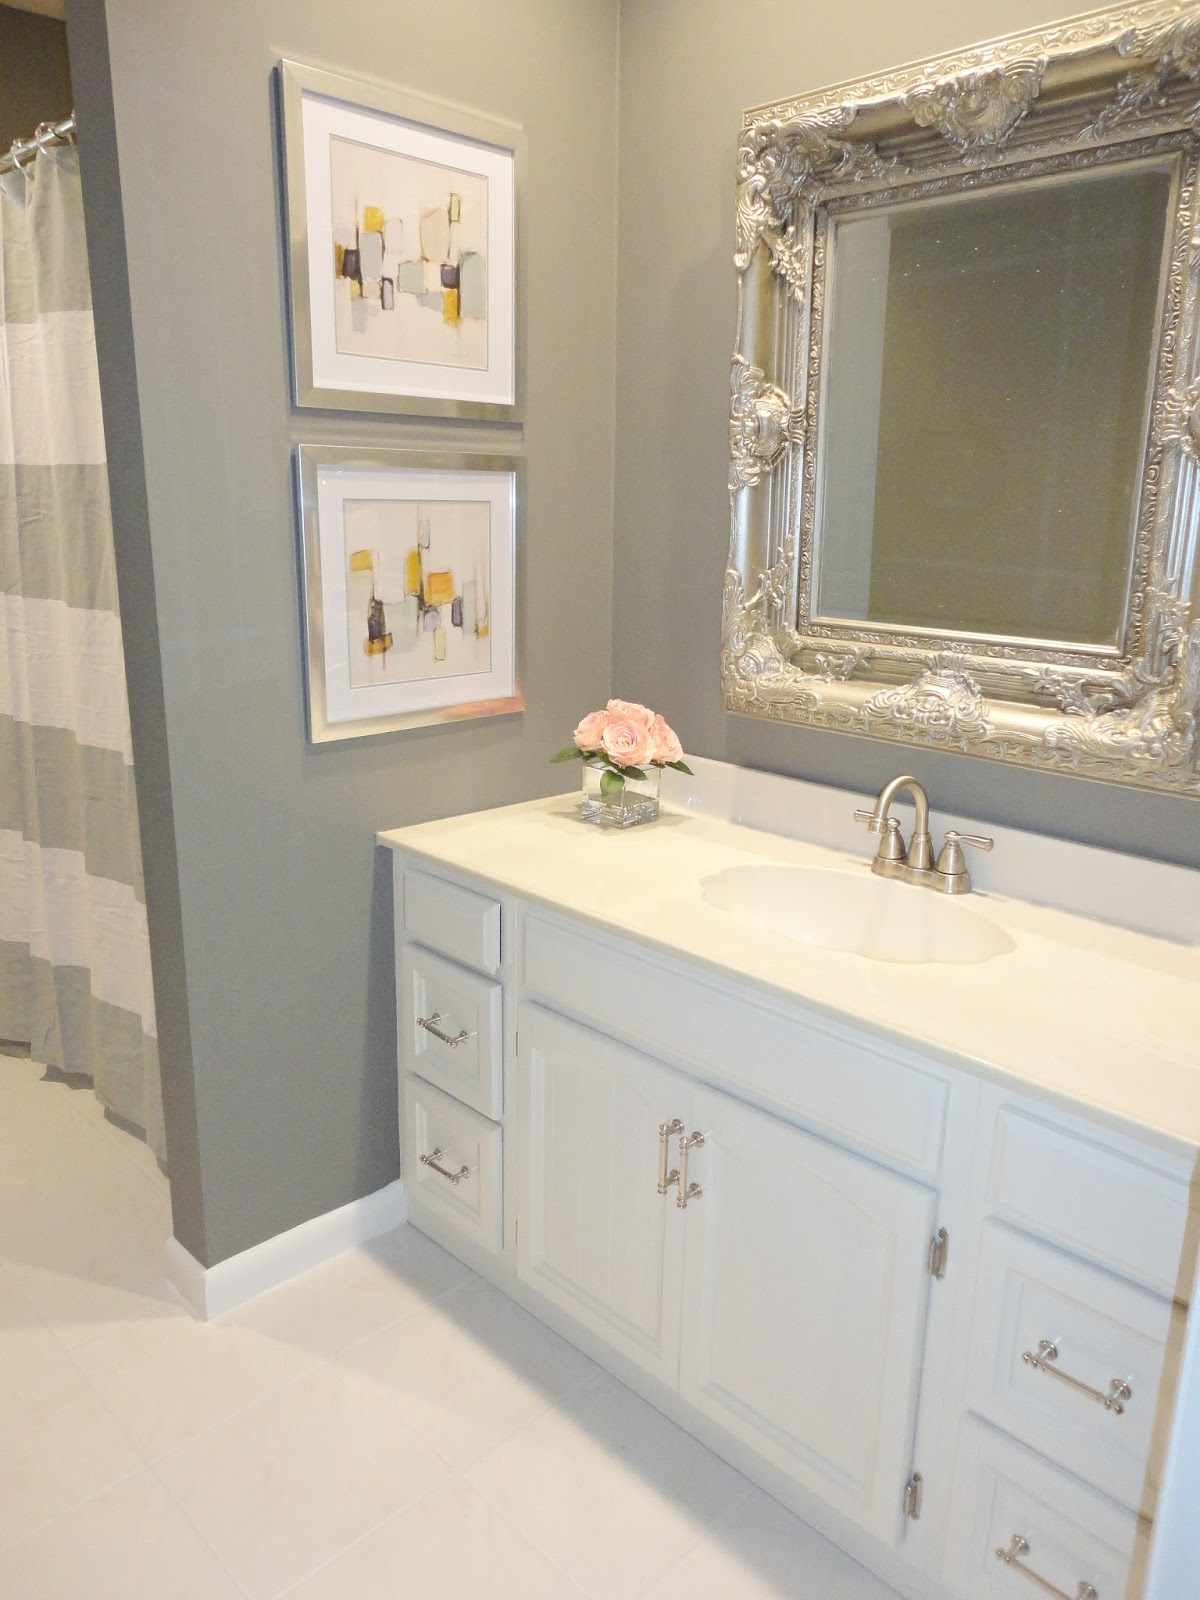 Livelovediy diy bathroom remodel on a budget for Bathroom renovation images